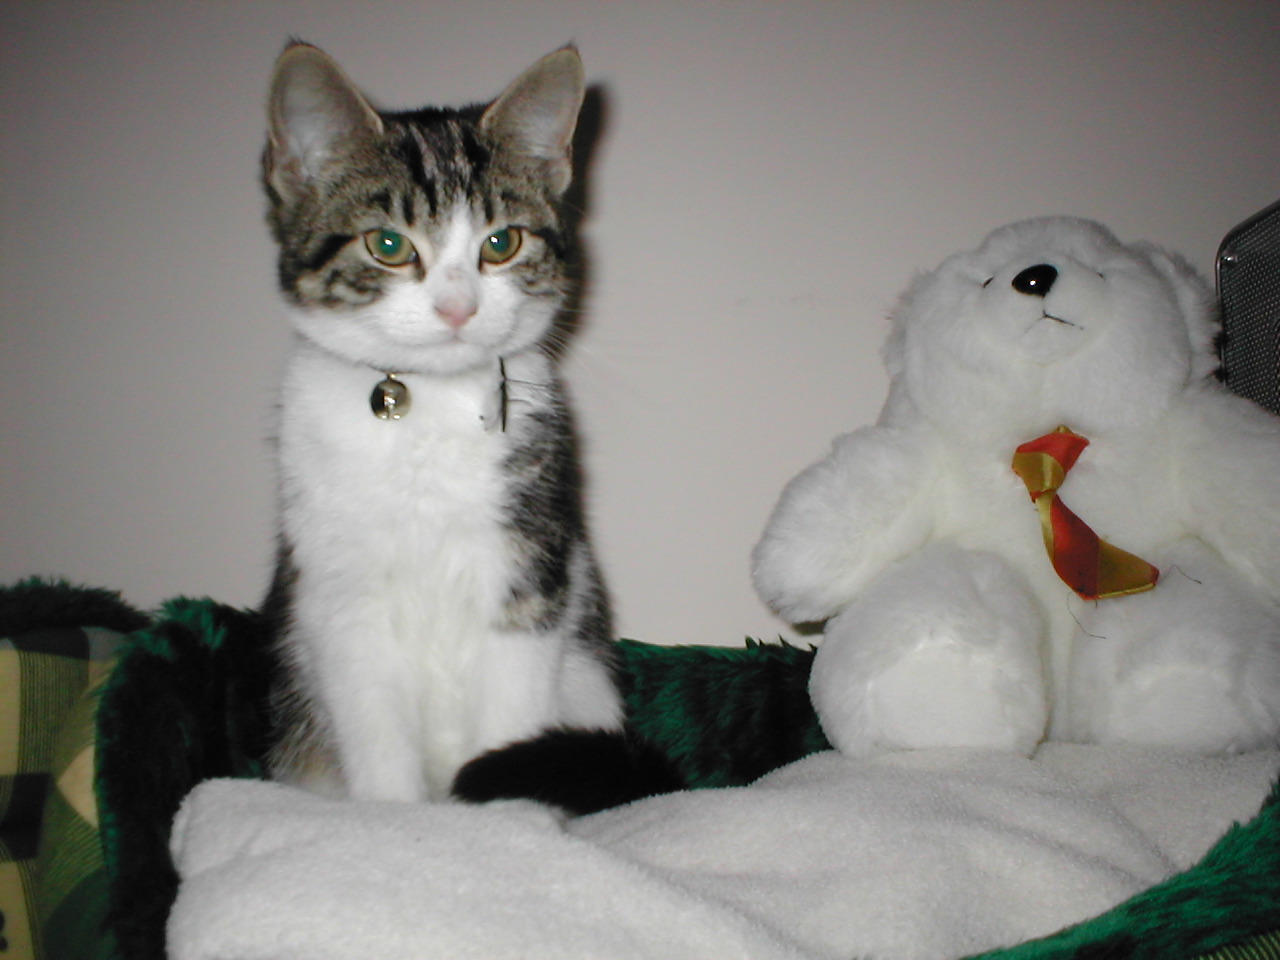 Kitten sitting upright on bed next to stuffed toy